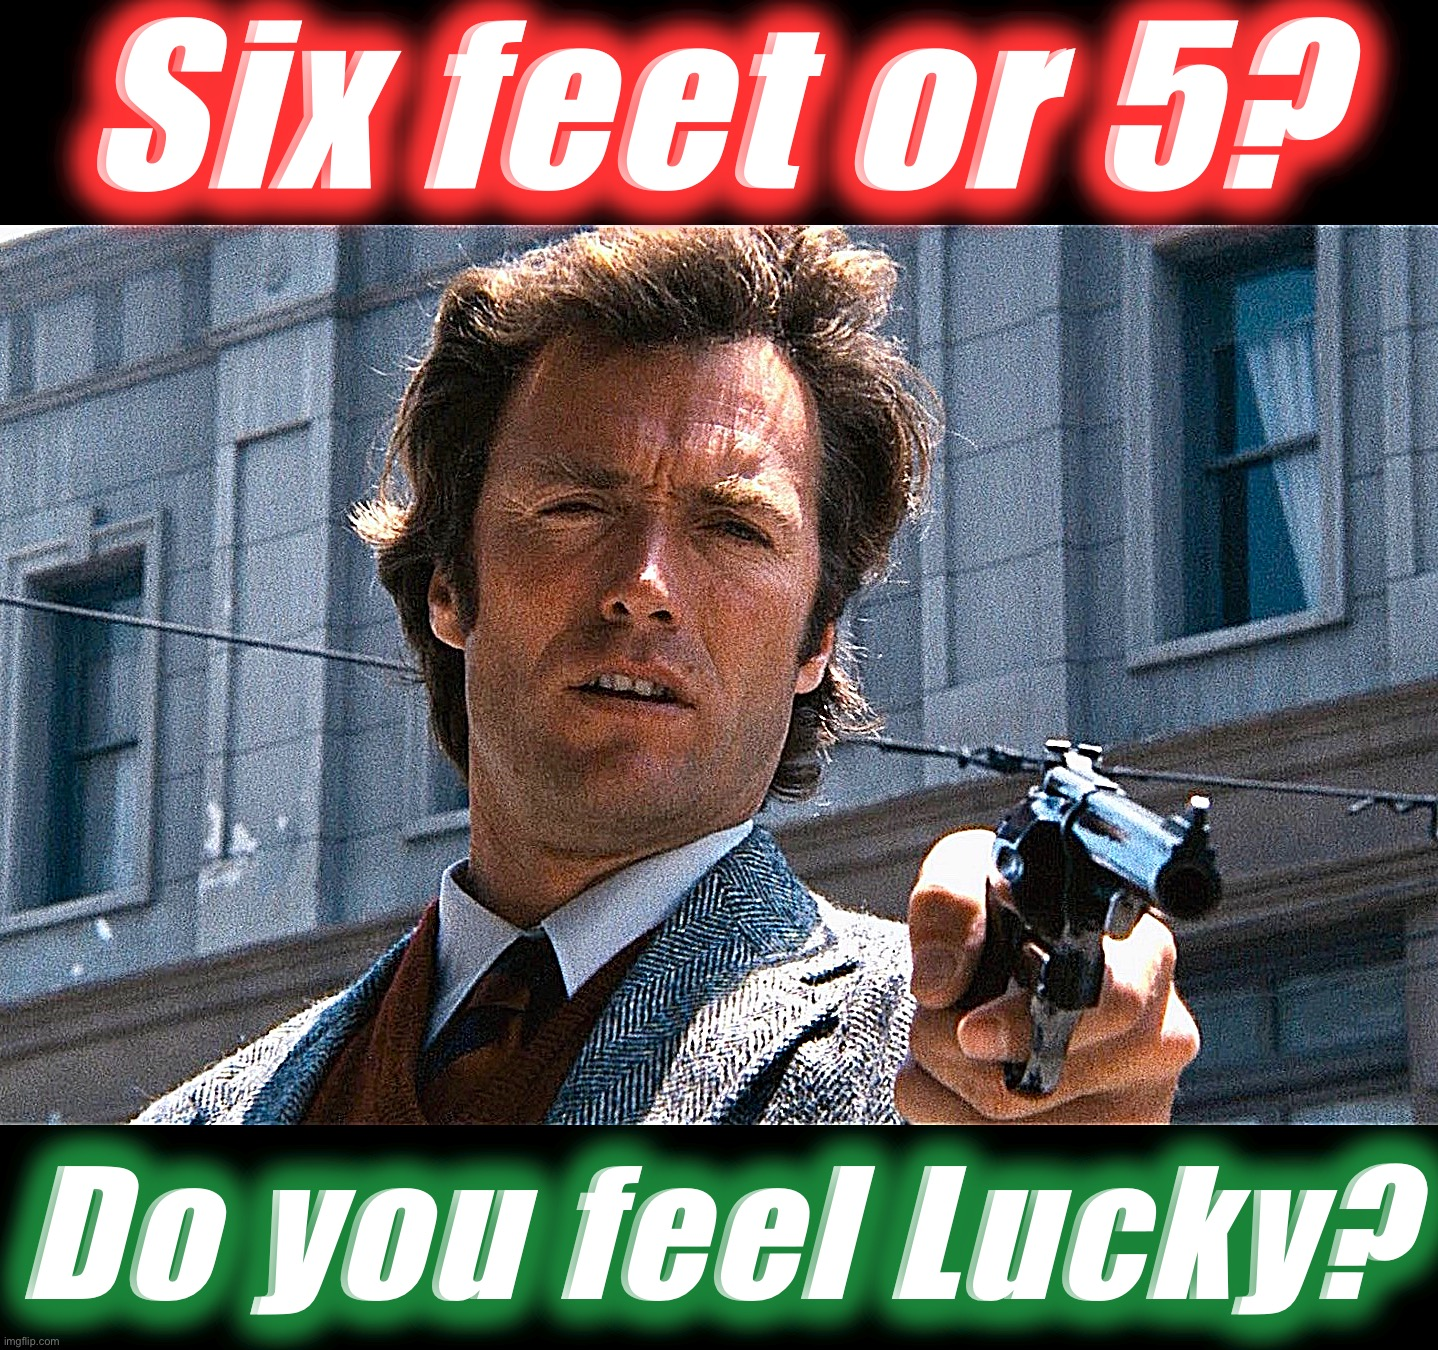 It's an easy question |  Six feet or 5? Do you feel Lucky? | image tagged in dirty harry,memes,social distancing,movie quotes,coronavirus,clint eastwood | made w/ Imgflip meme maker